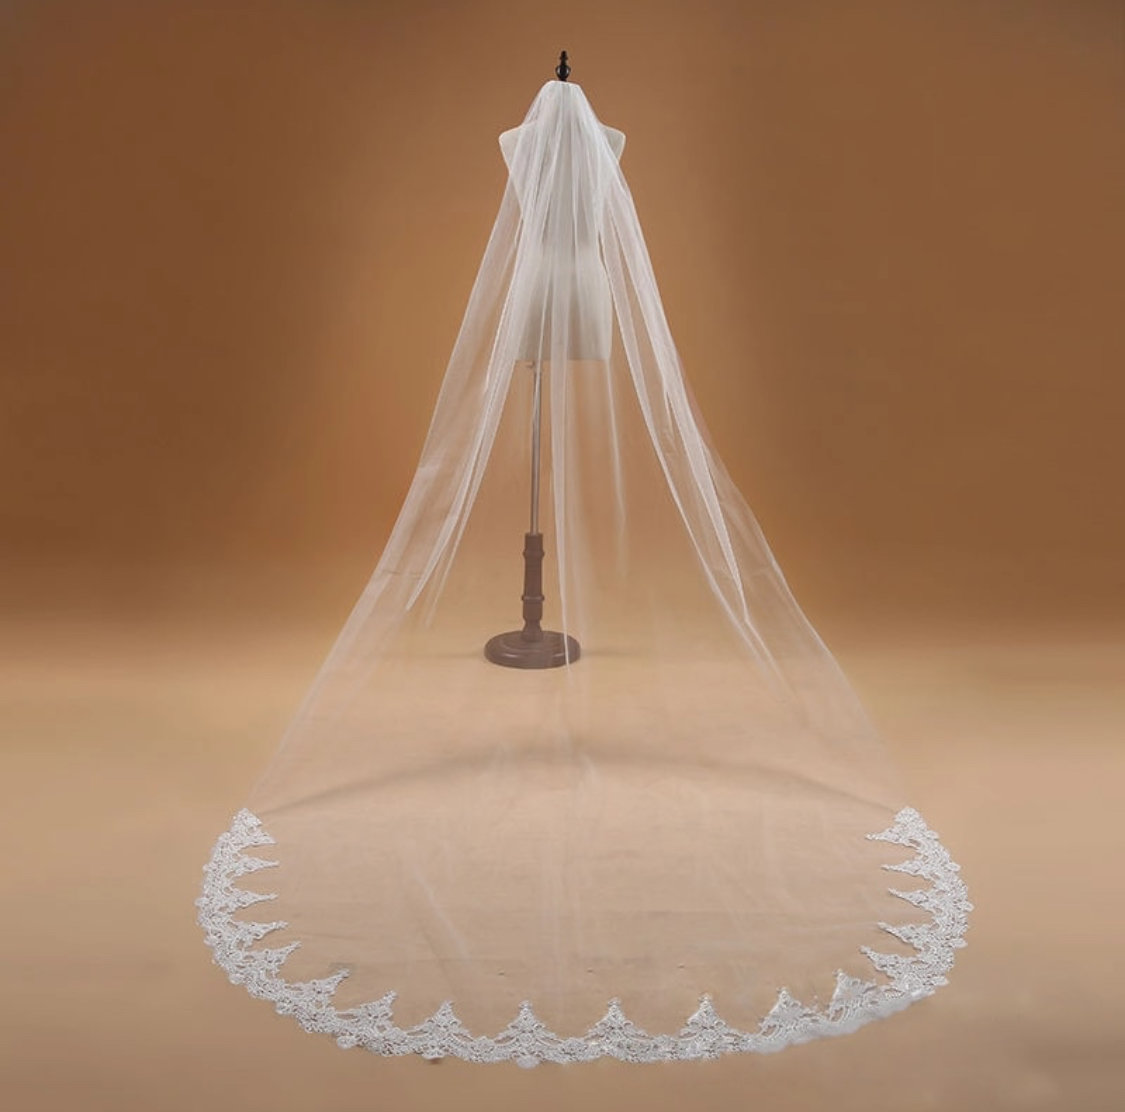 3m/10 ft White/Ivory lace appliqué edge cathedral veil